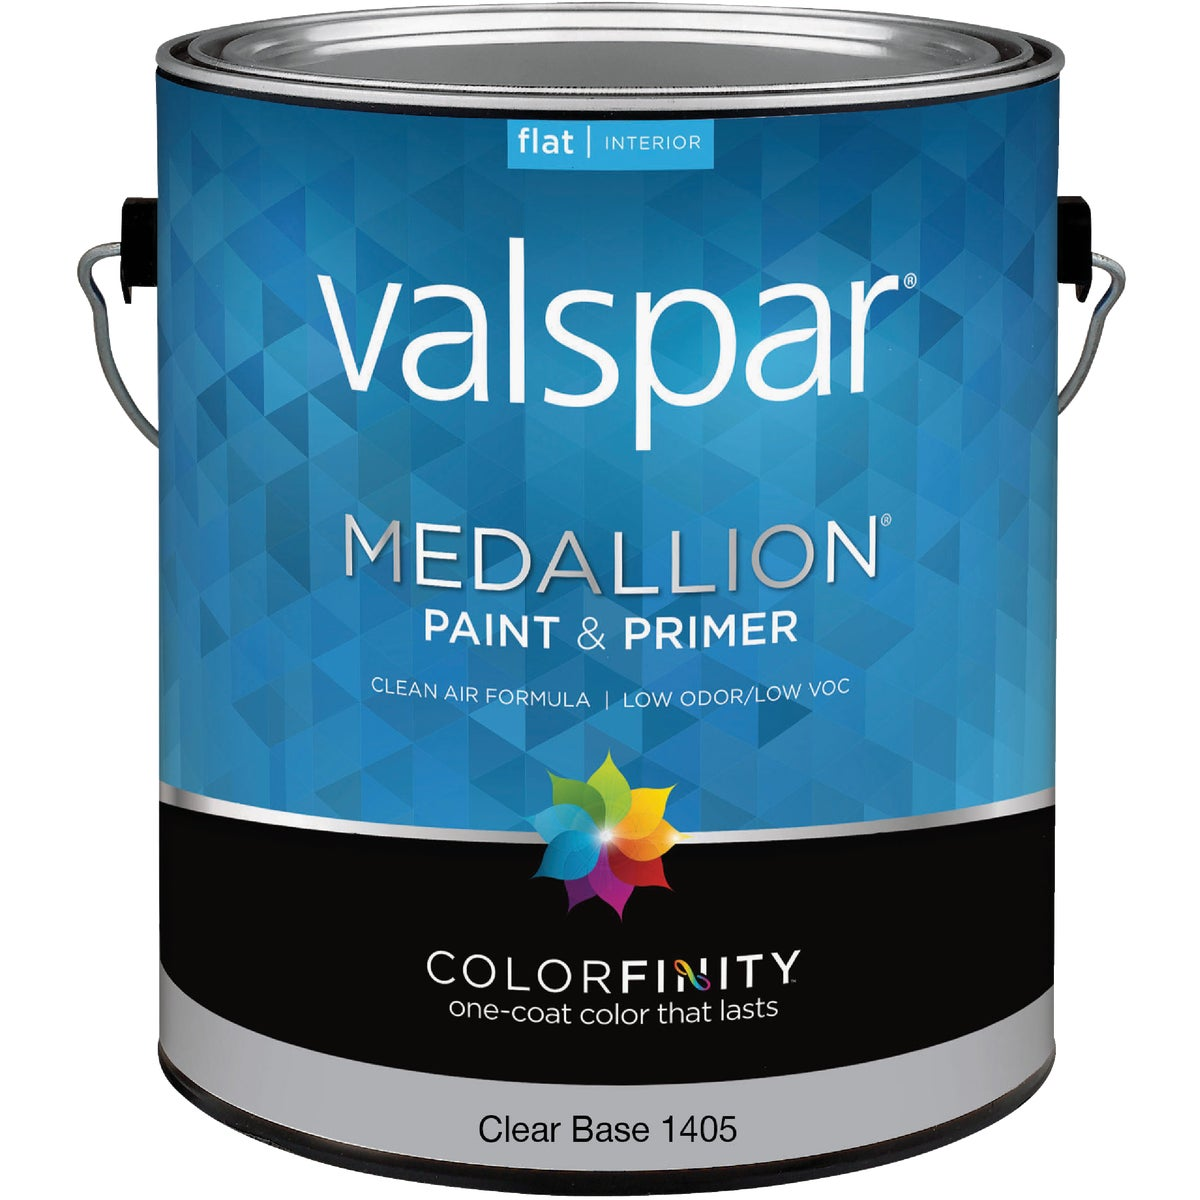 INT FLAT CLEAR BS PAINT - 027.0001405.007 by Valspar Corp